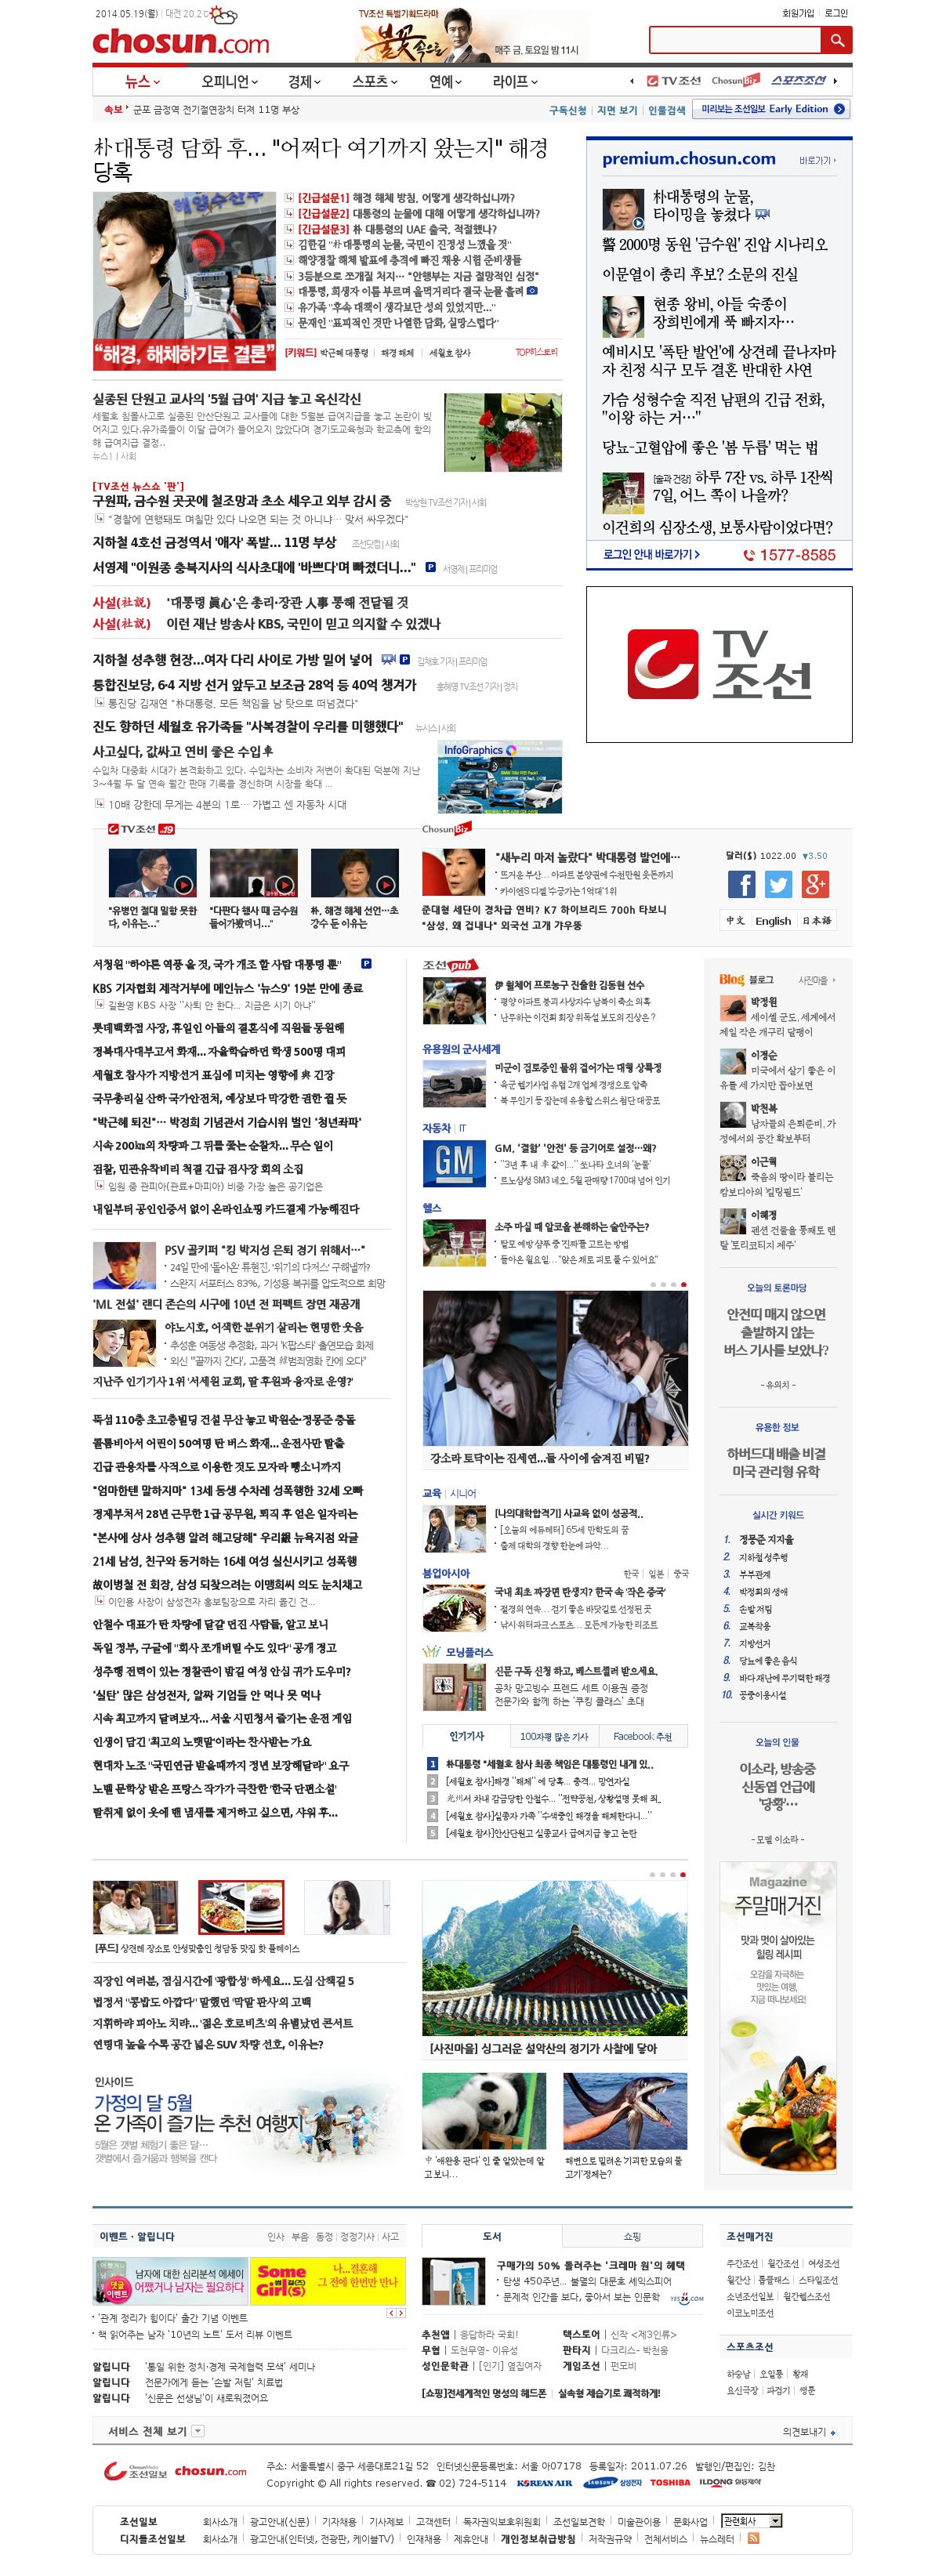 chosun.com at Monday May 19, 2014, 2:02 p.m. UTC